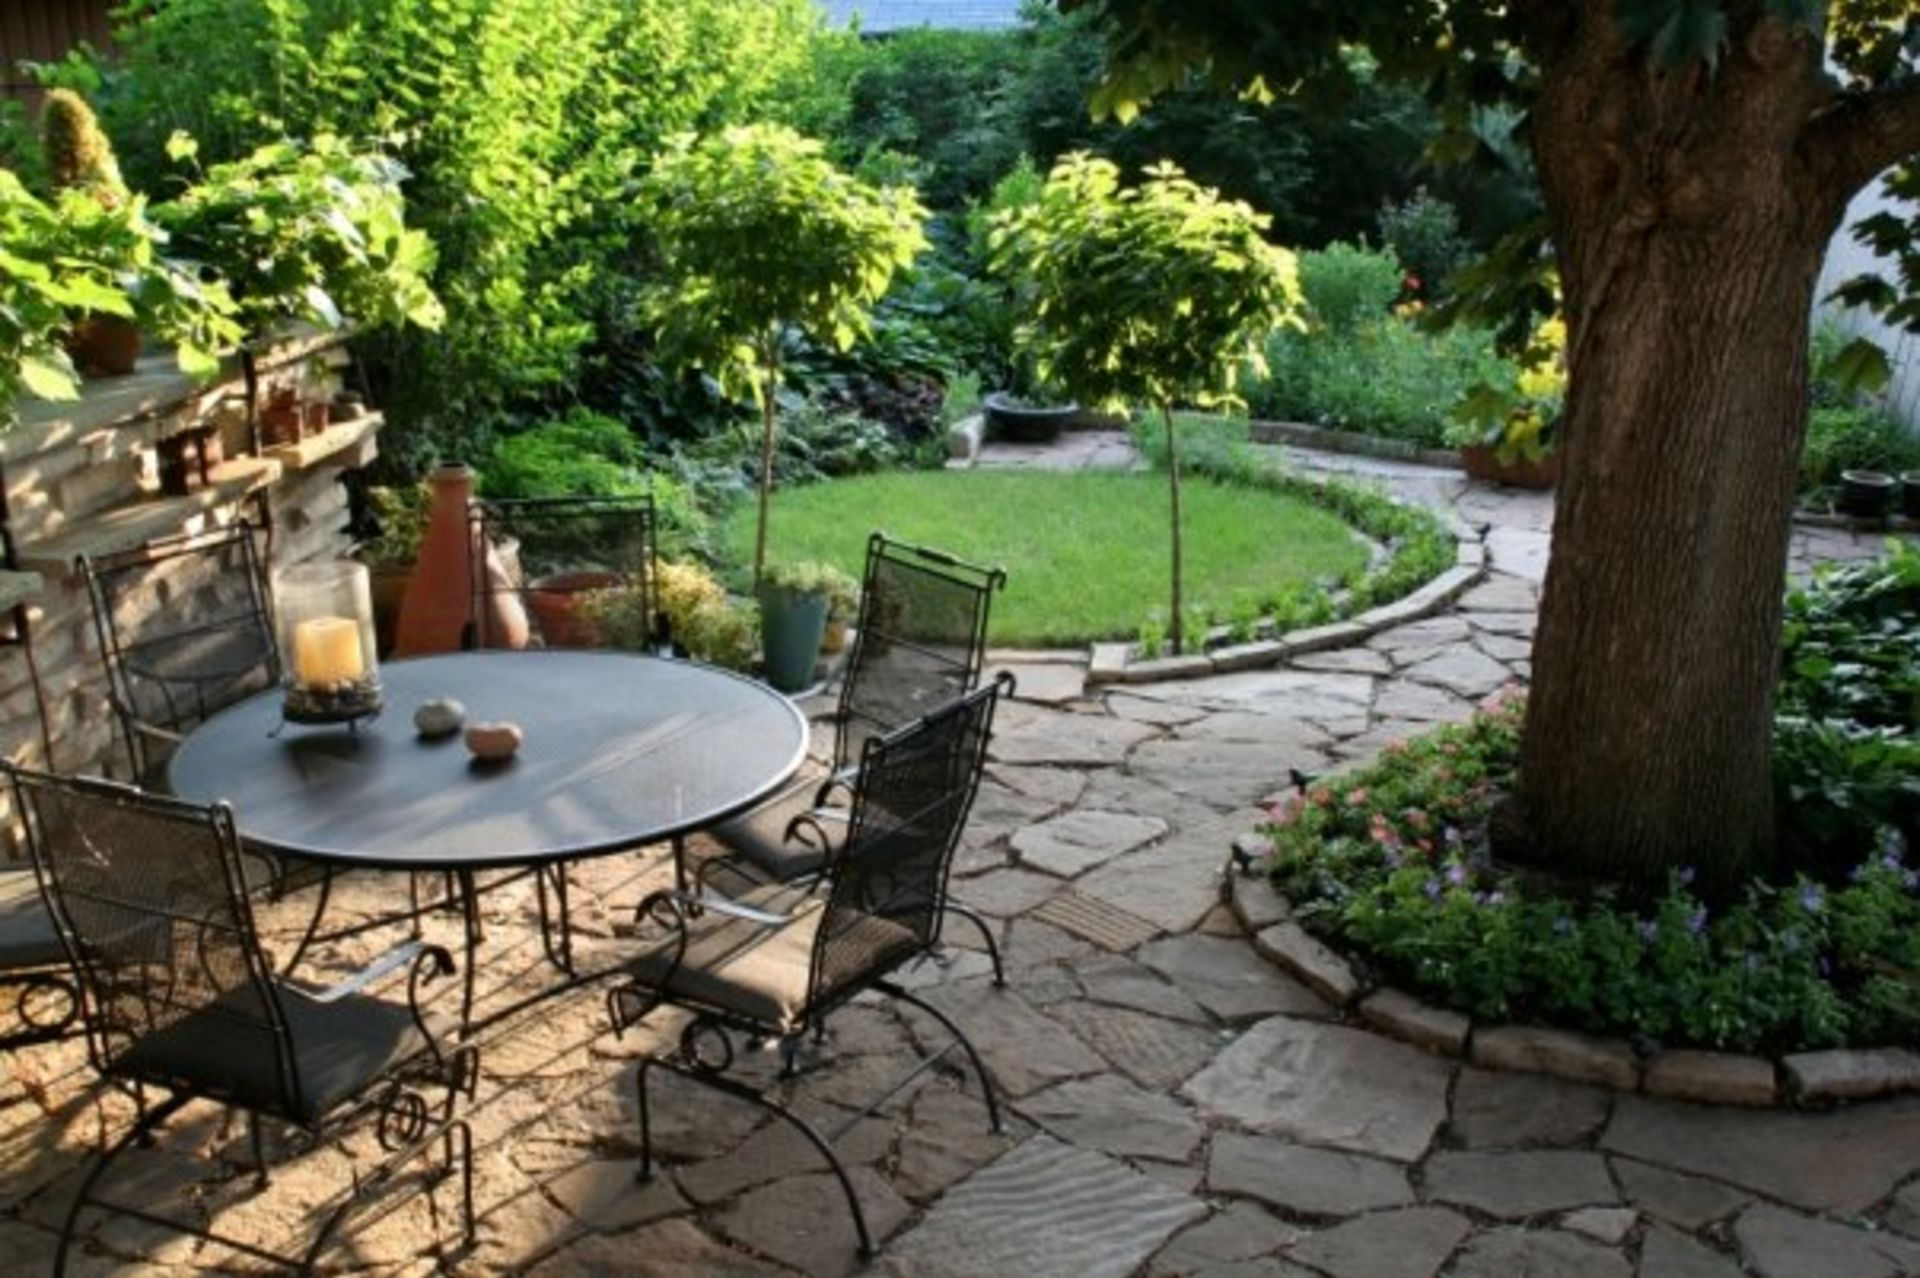 How To Get The Most From Your Small Backyard